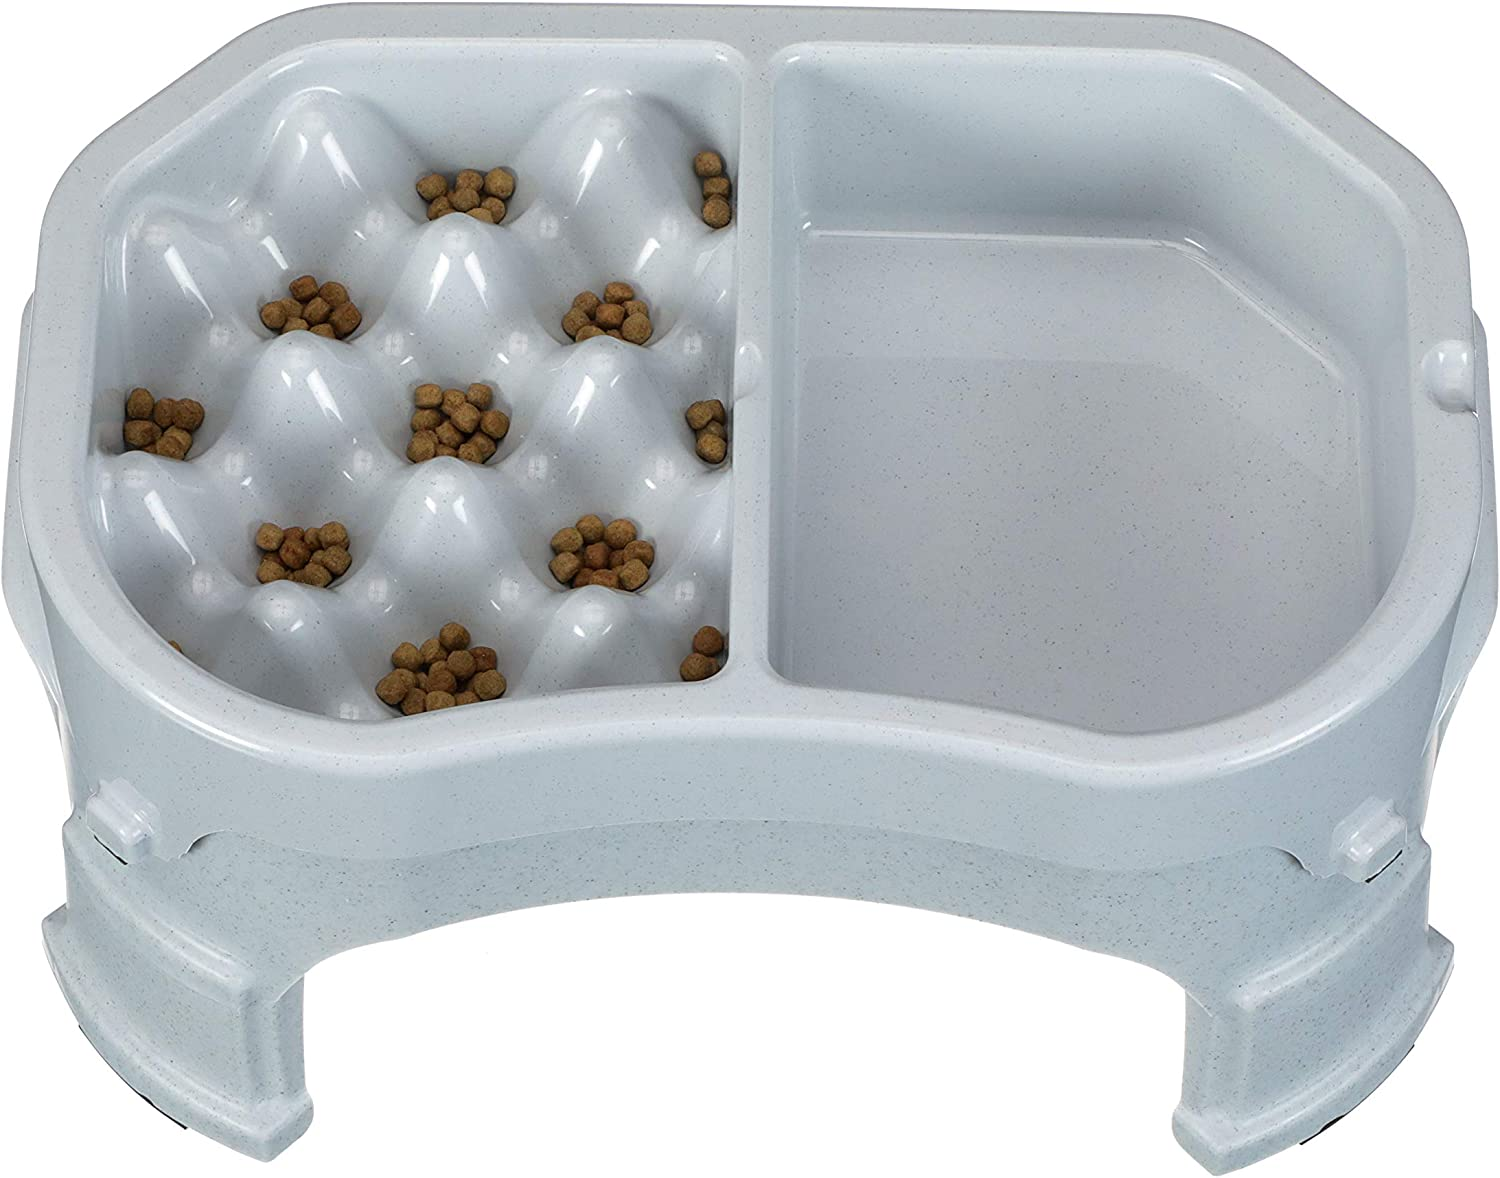 Neater Pet Brands – Neater Raised Slow Feeder – Elevated Dog Bowl and Adjustable Food Height (2.5 Cup, 6 Cup and Double Diner/w Water Bowl)